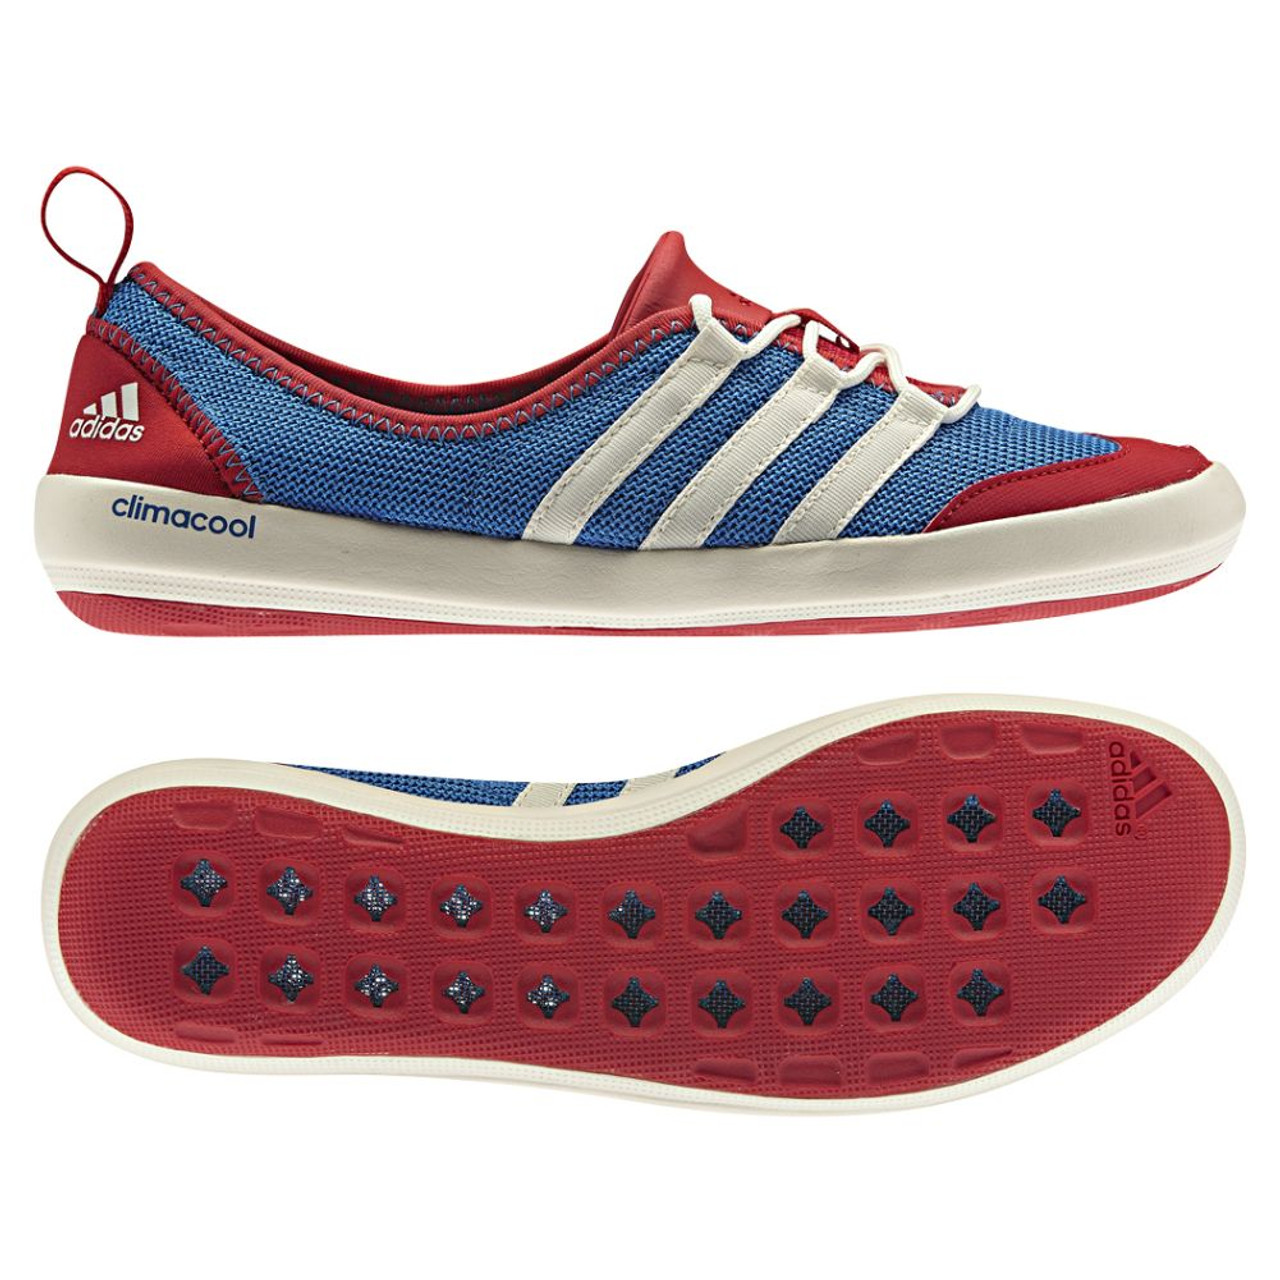 Adidas Climacool Boat Sleek RedWhtBlue Ladies Outdoor Shoes